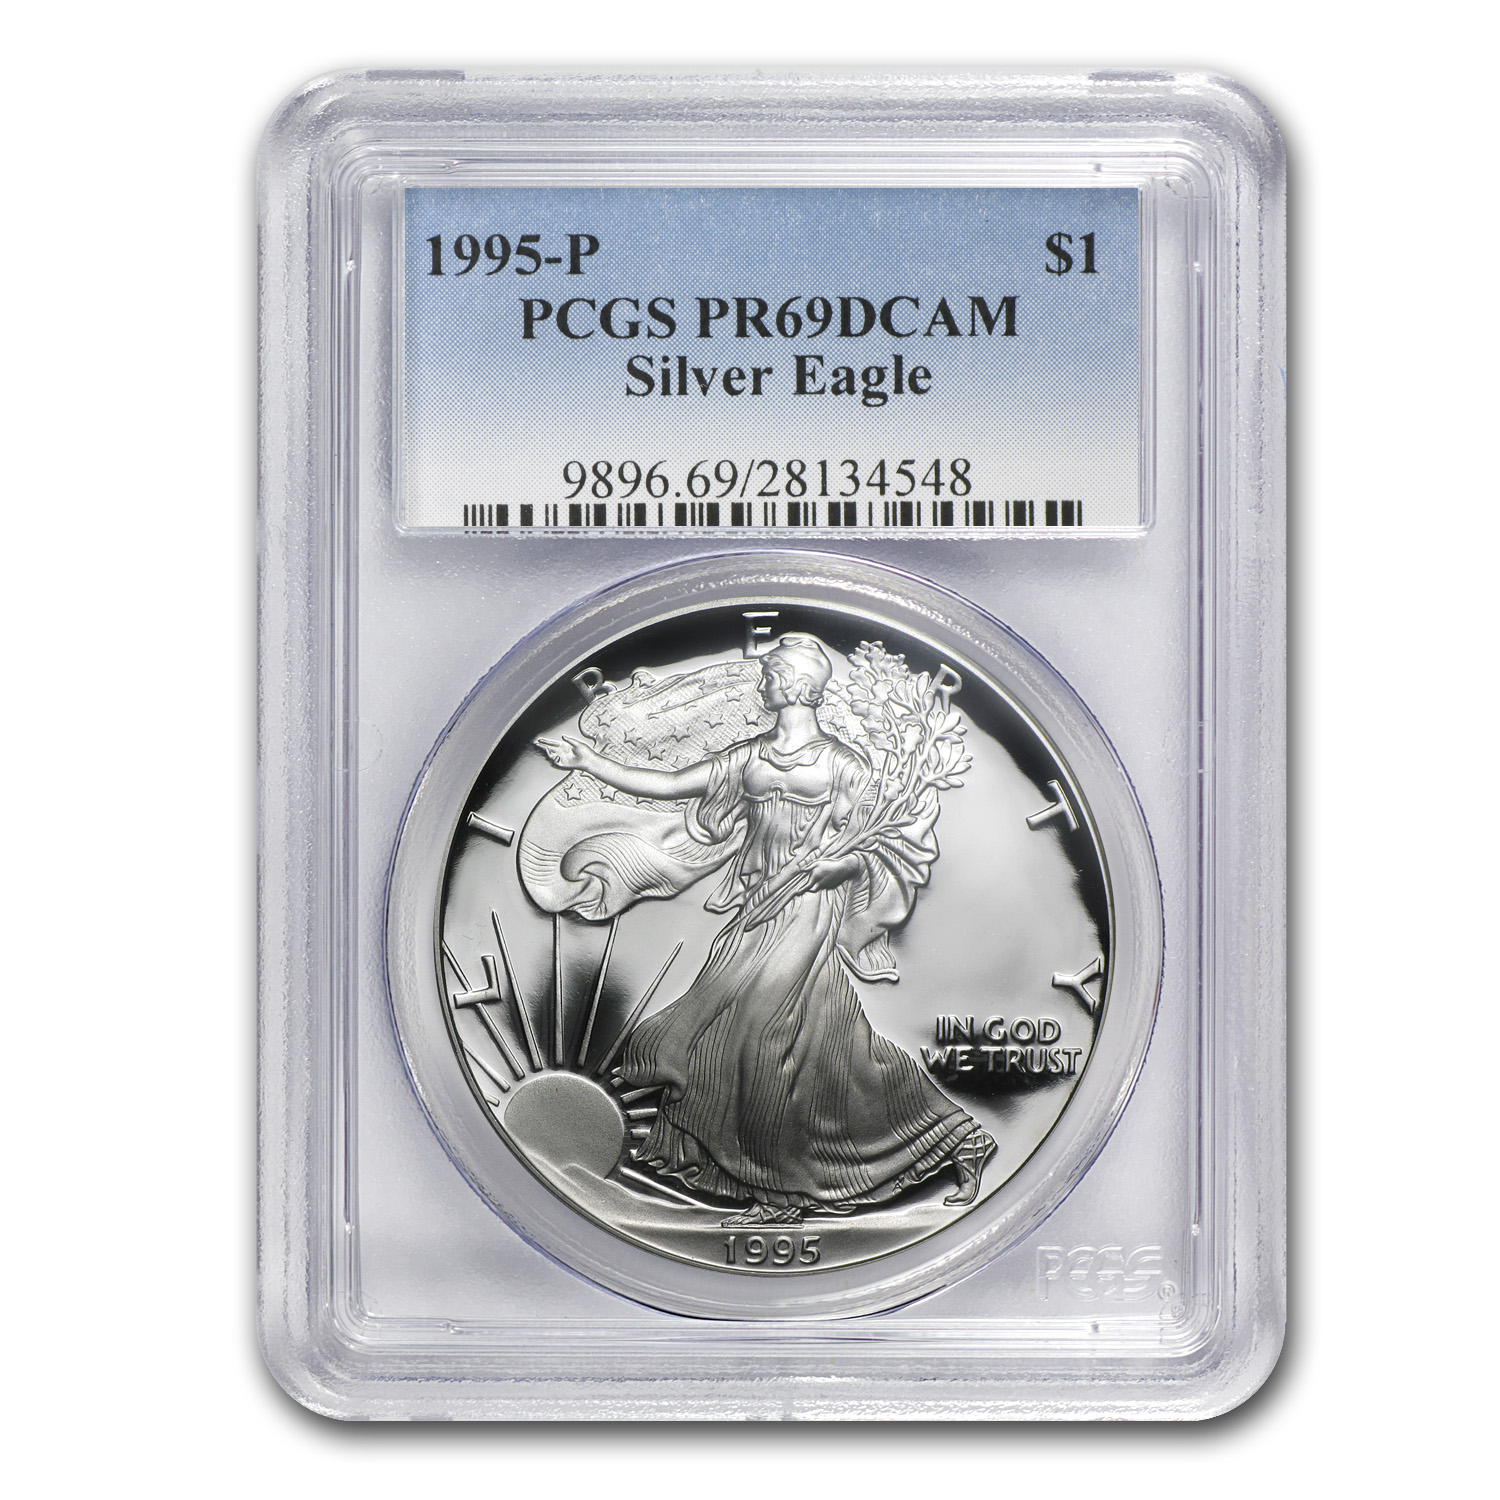 1986-2014 28-Coin Proof Silver American Eagle Set PR-69 PCGS